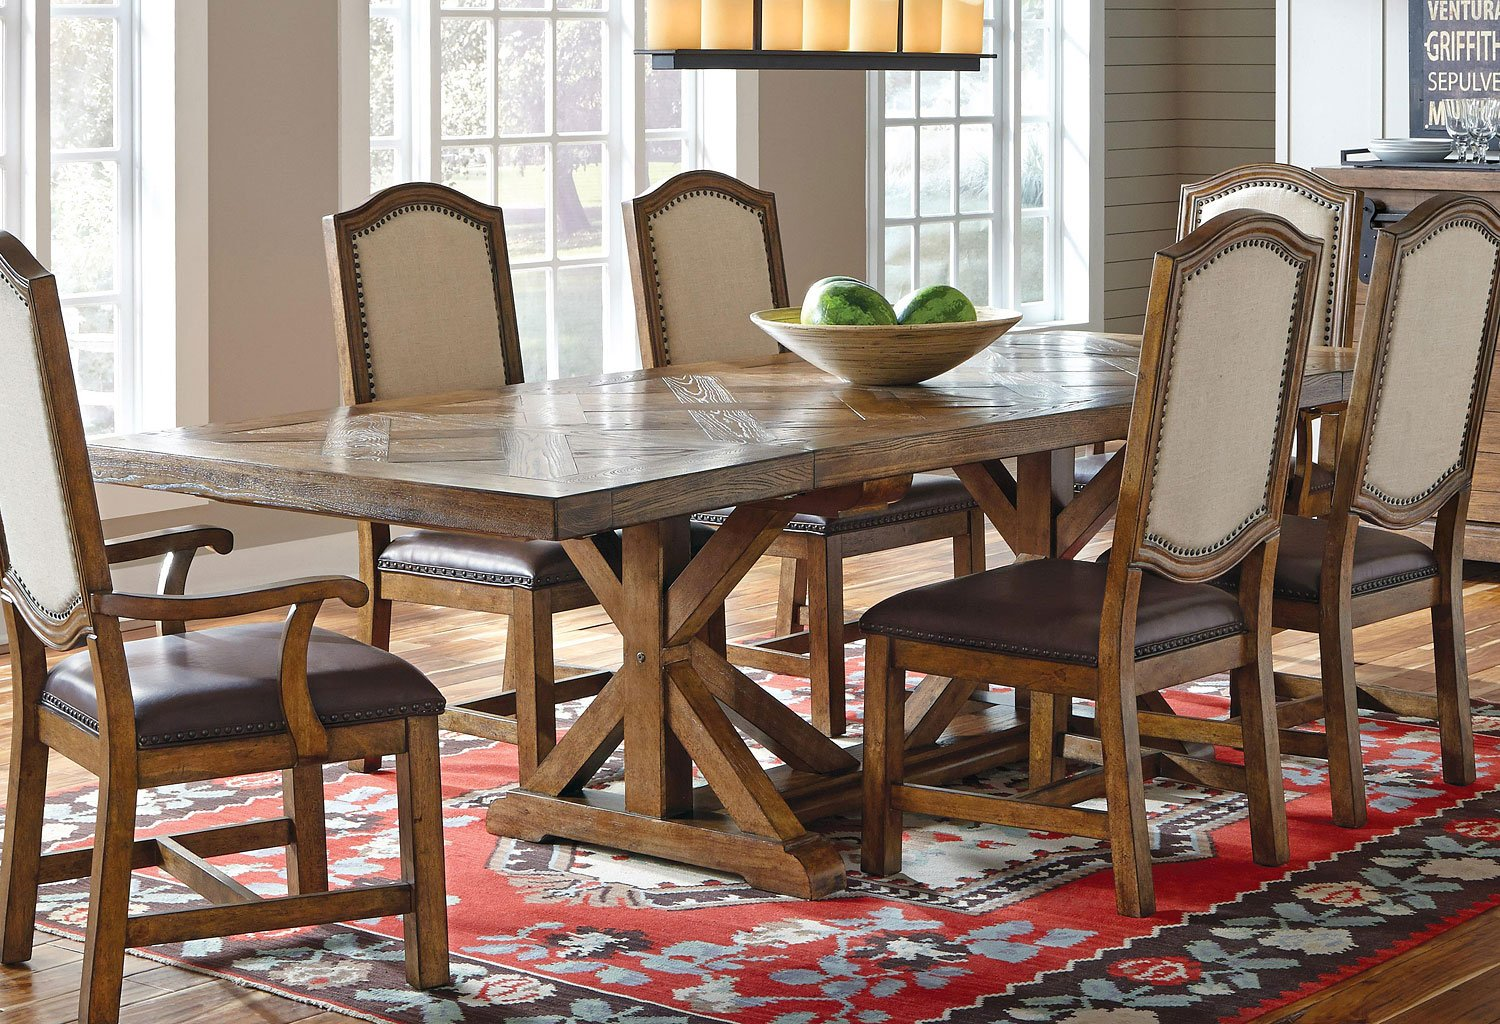 American Attitude X-Pattern Saw Horse Dining Table